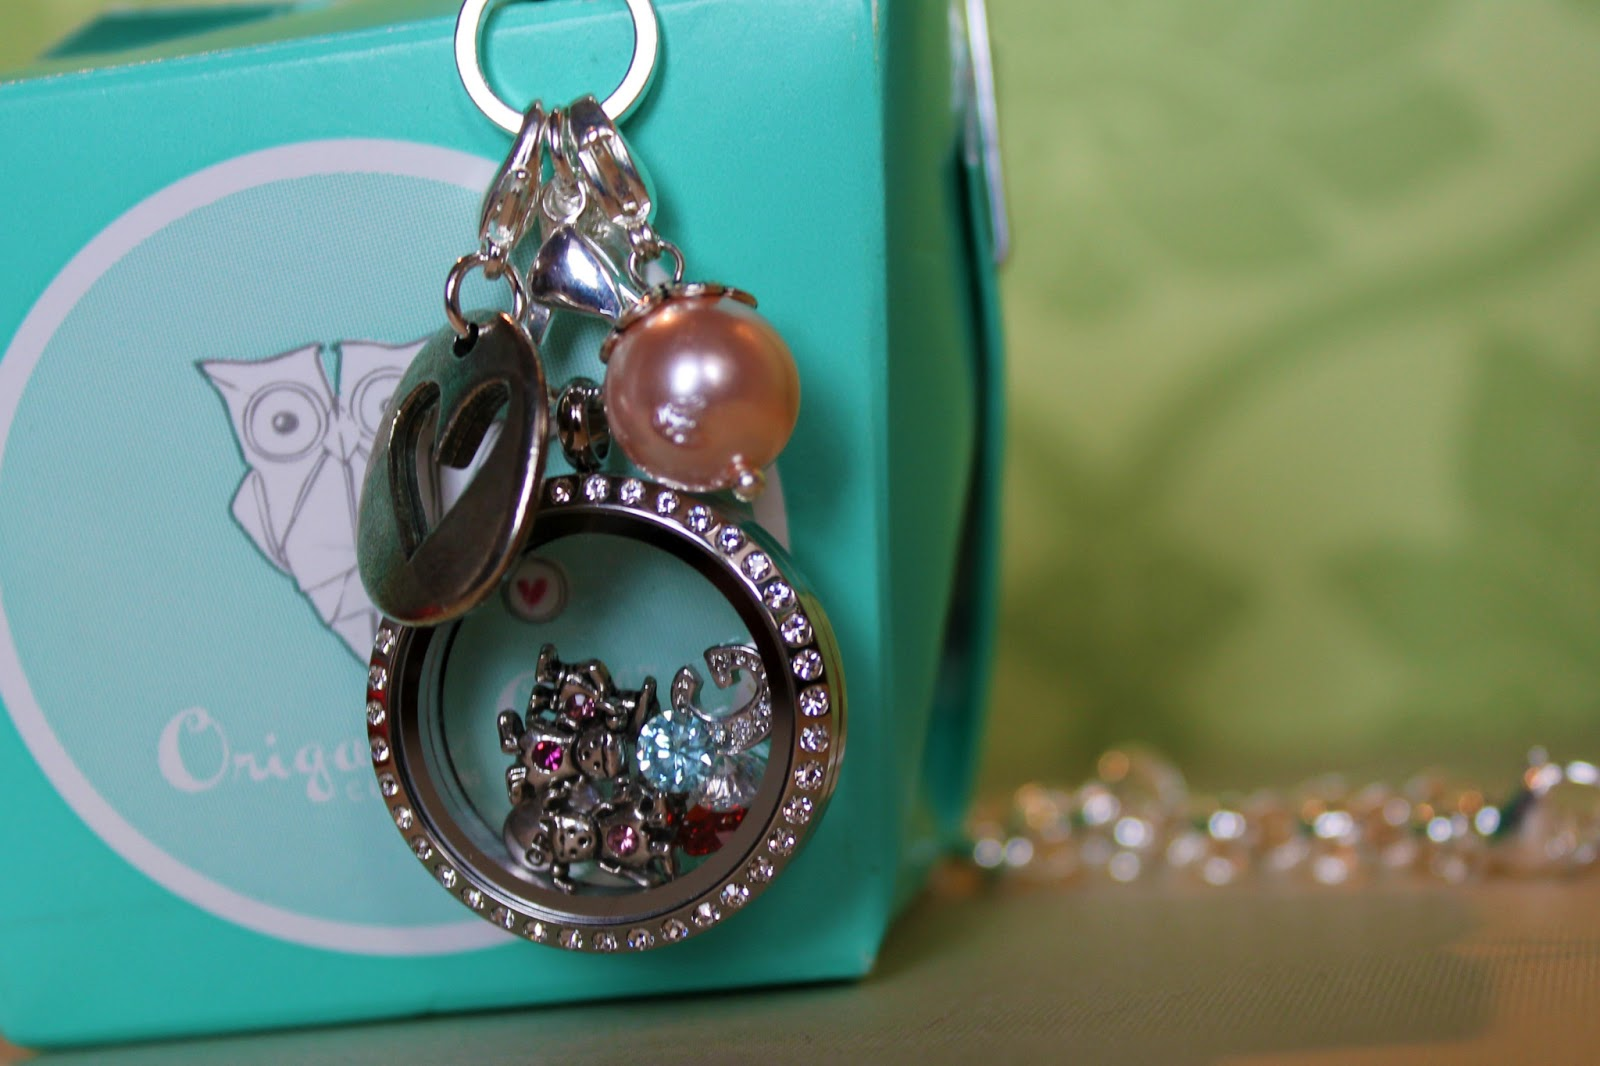 Origami Owl Necklace http://www.hottmamainthecity.com/2013/02/Orgami-Owl-Custom-Jewelry.html